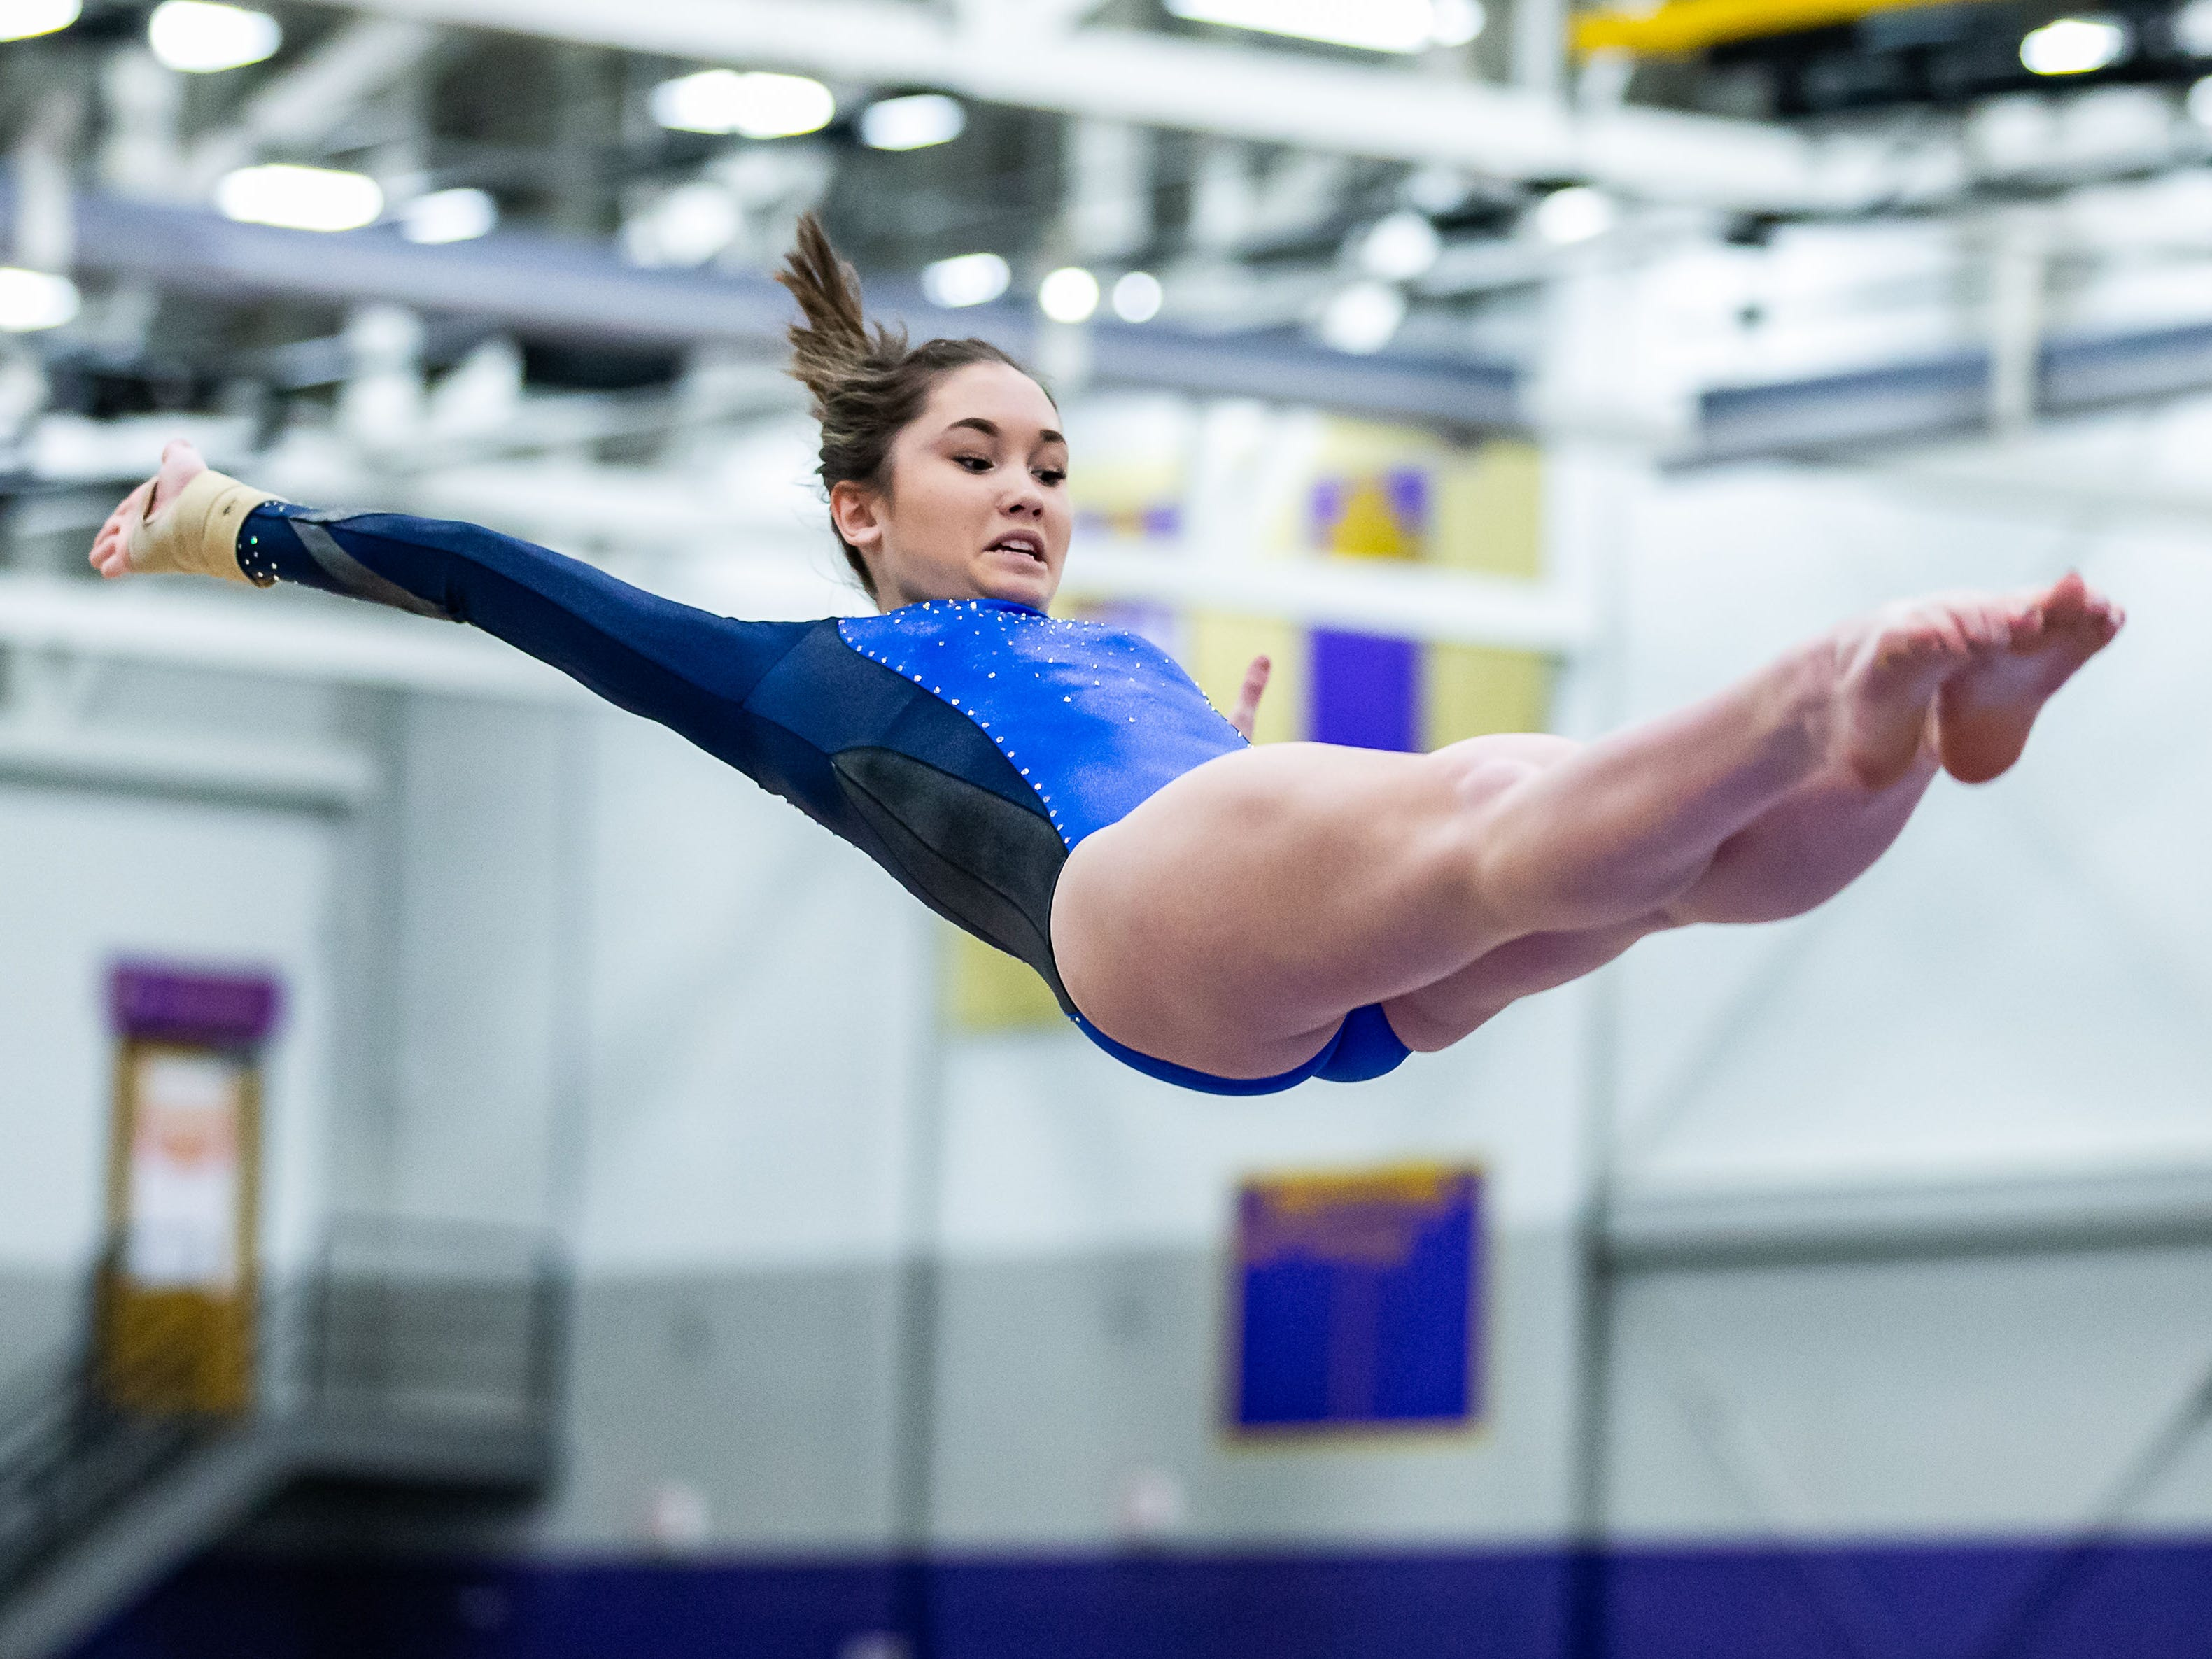 Brookfield junior Riley Feng launches off the vault during the 2018 Cooney Gymnastics Invitational at Oconomowoc on Saturday, Dec. 8.